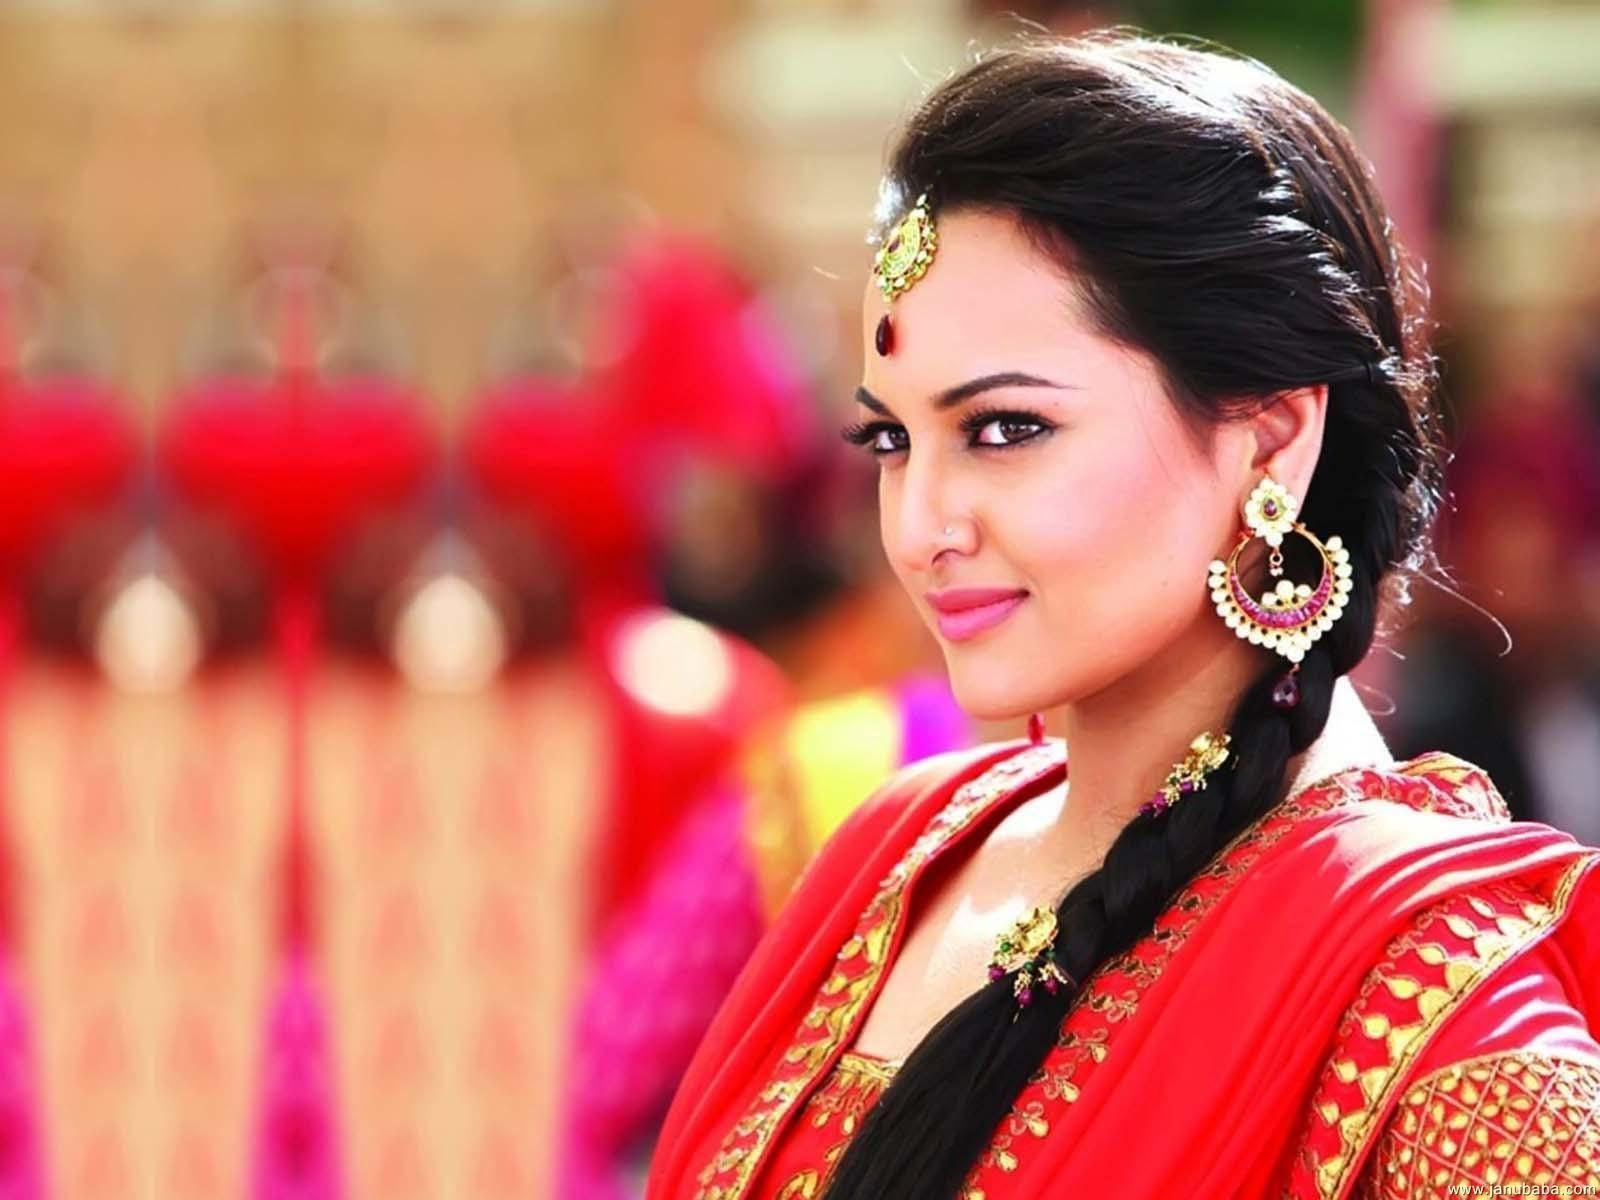 sonakshi sinha wallpapers - wallpaper cave